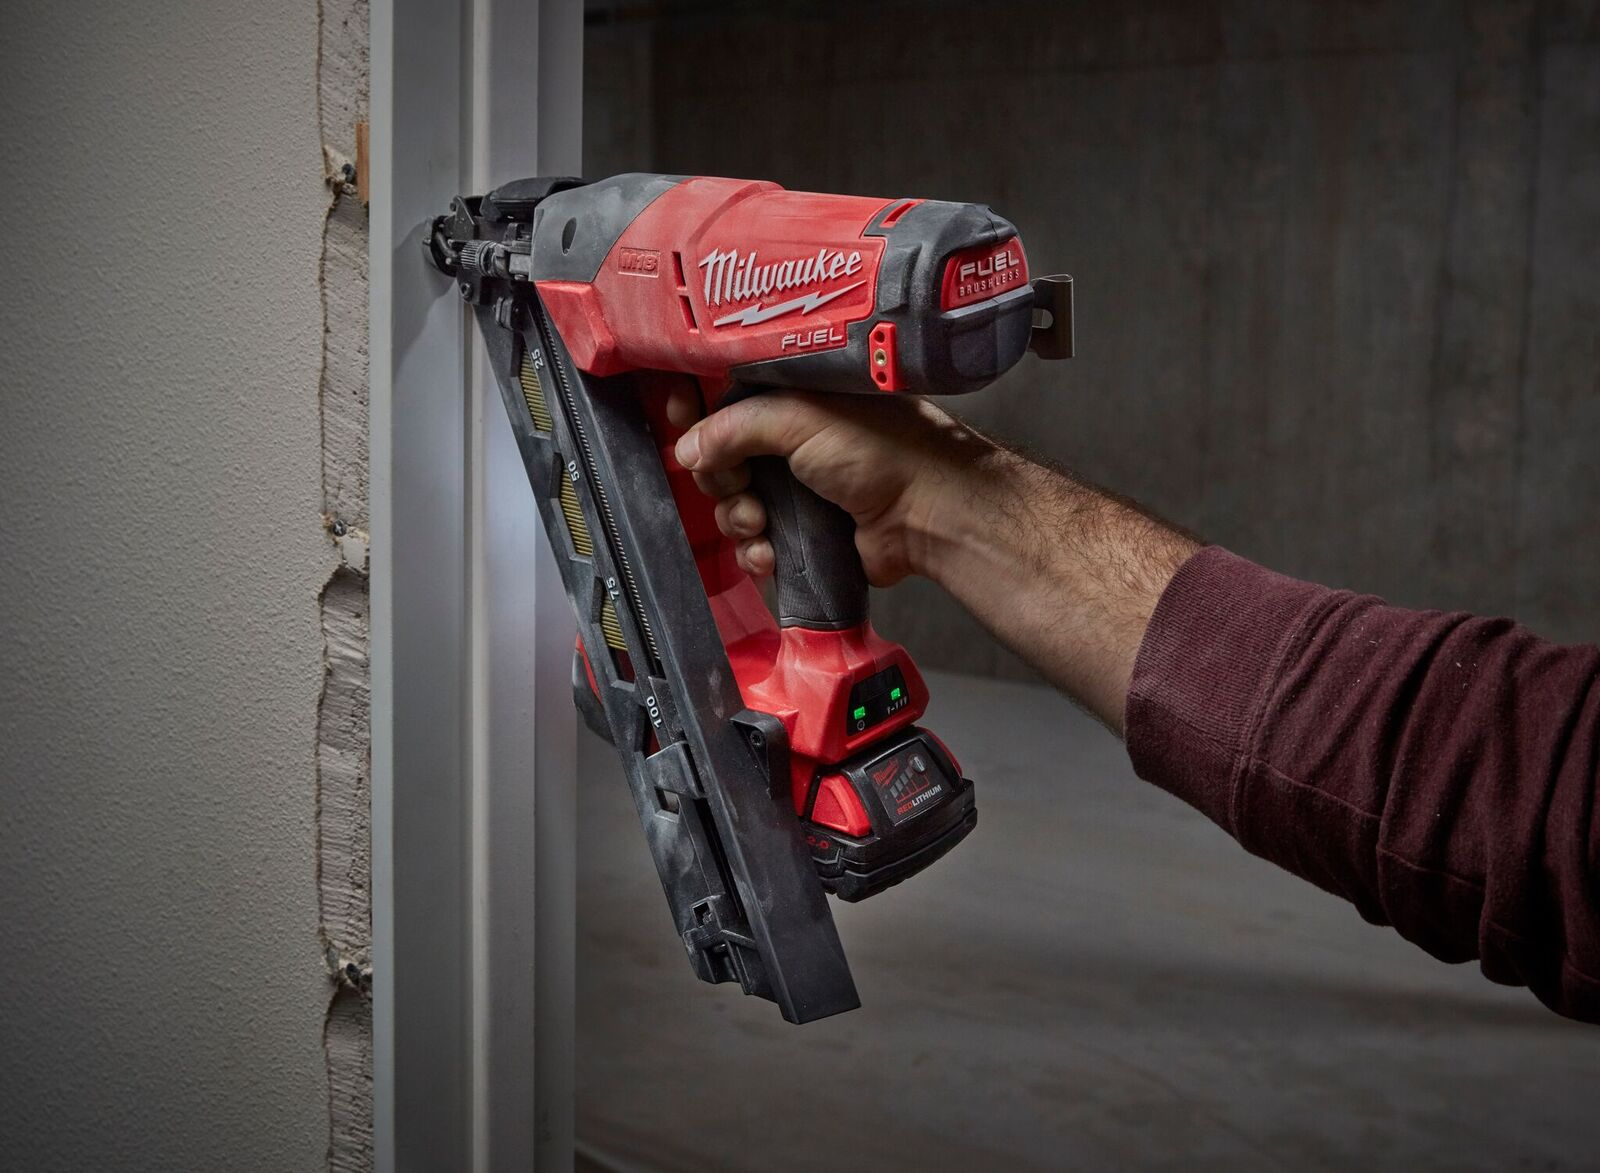 new milwaukee m18 fuel finish nailers preview - Milwaukee Framing Nailer